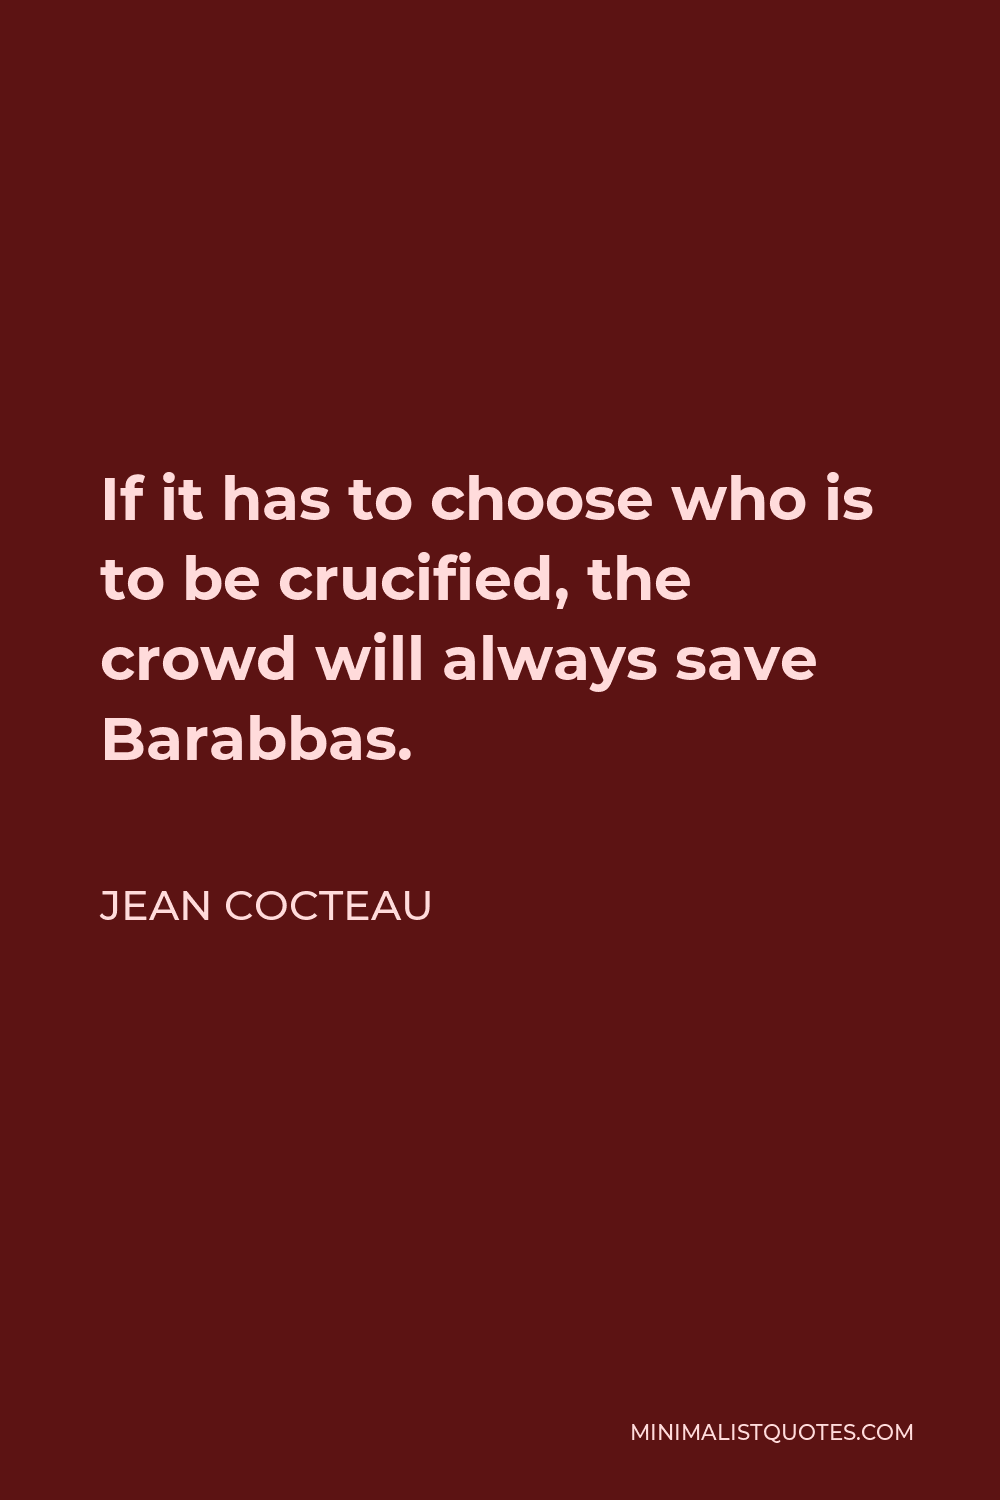 Jean Cocteau Quote - If it has to choose who is to be crucified, the crowd will always save Barabbas.